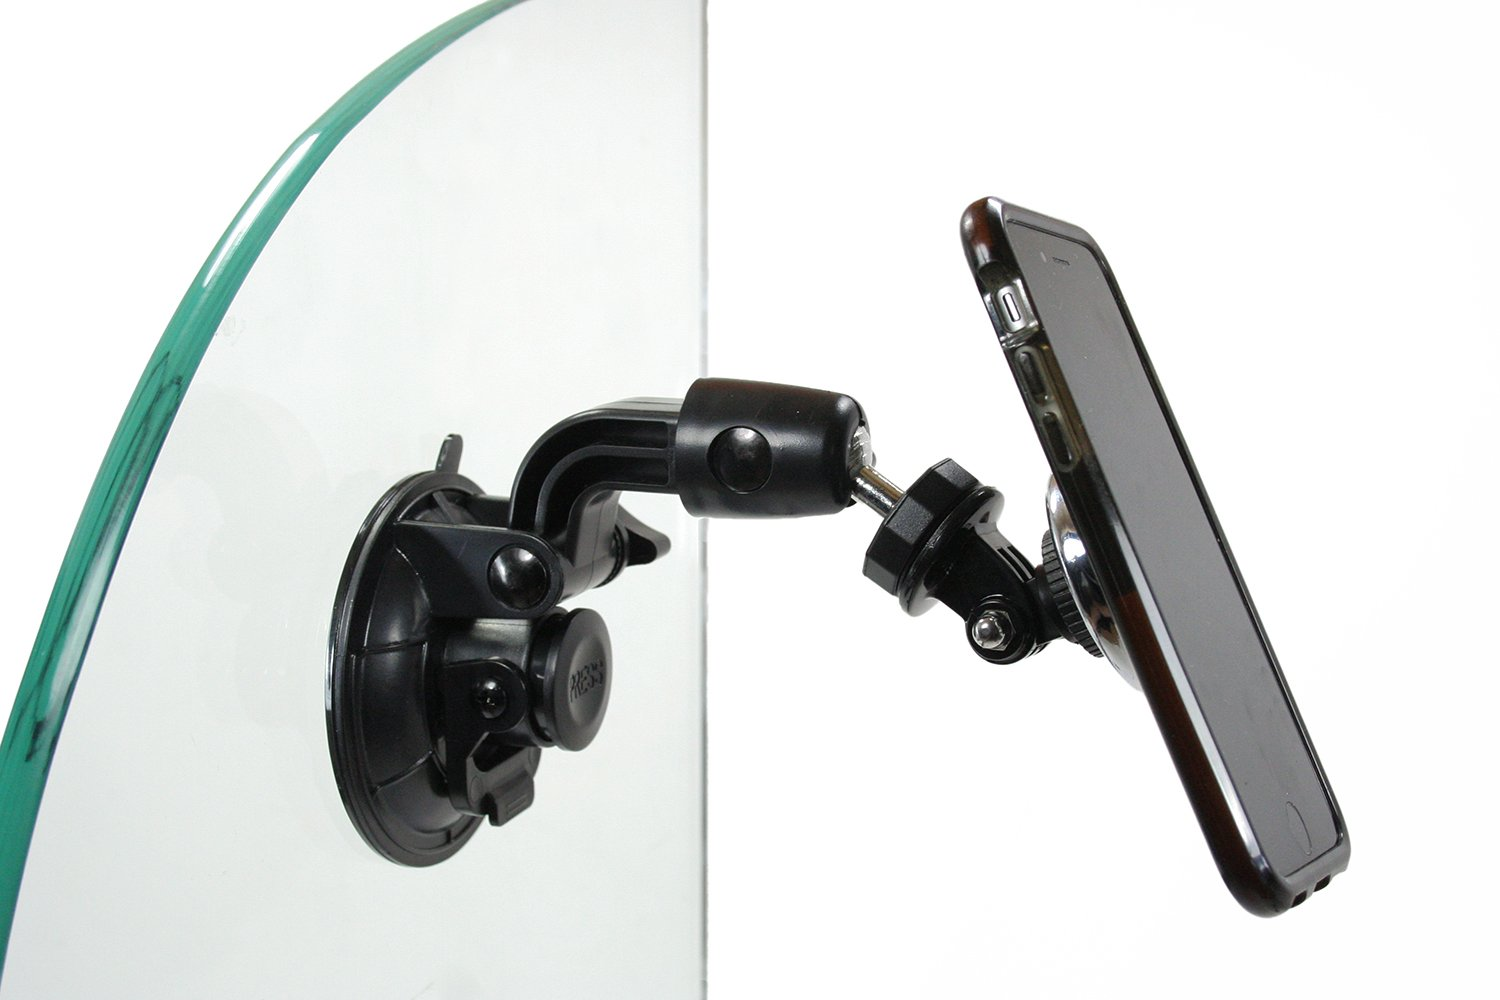 Livestream Gear Strong Hold Easily attach a Phone to Glass Surfaces via Magnetic Mount and Metallic Plates 603 Universal Magnetic Phone Mount and Suction Cup Mount for Glass//Windshield Cellfy Inc